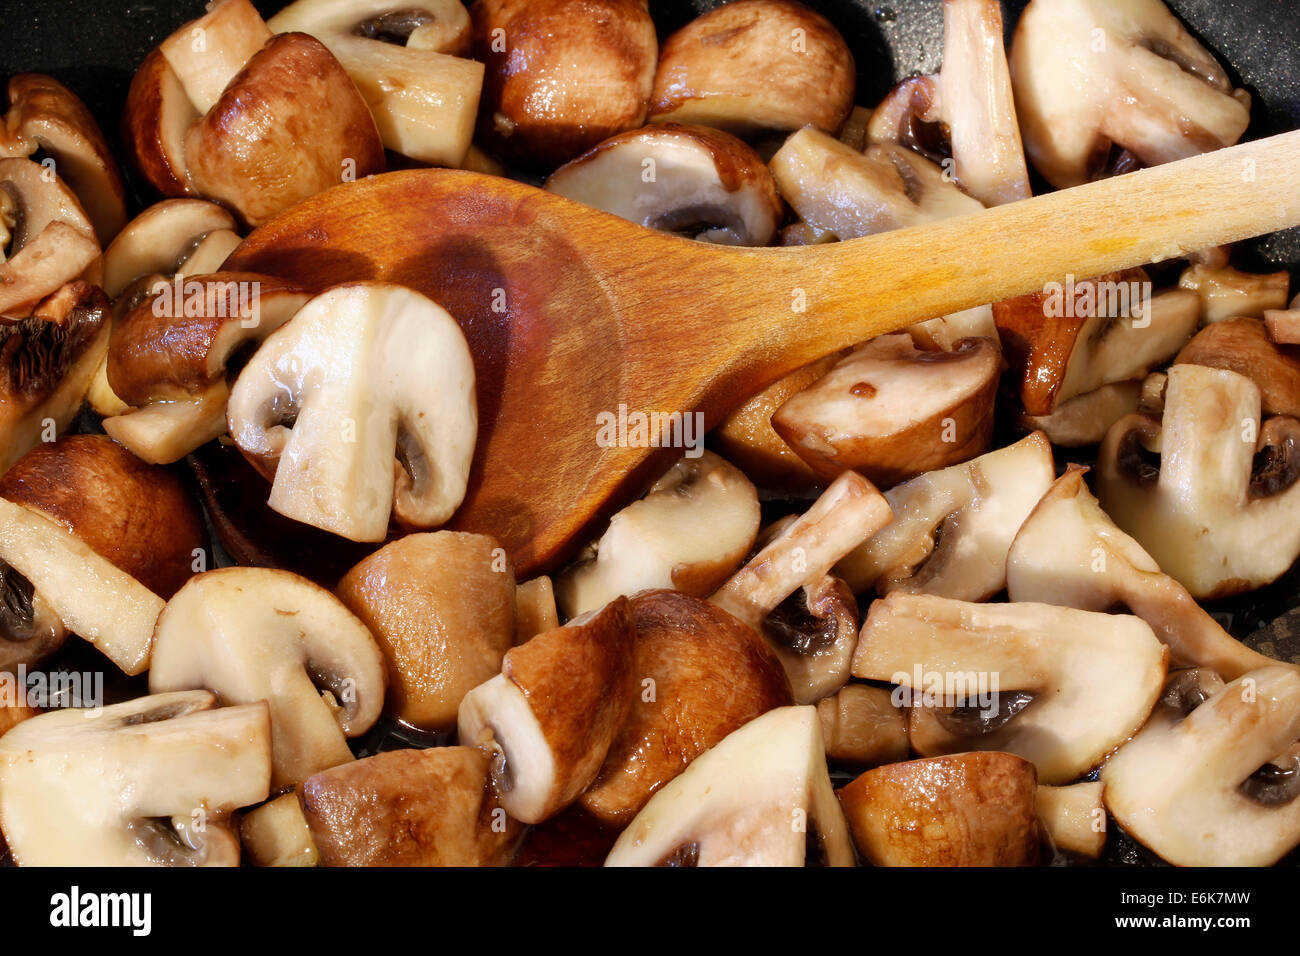 Sliced mushroom in a pan with a wooden spoon - Stock Image